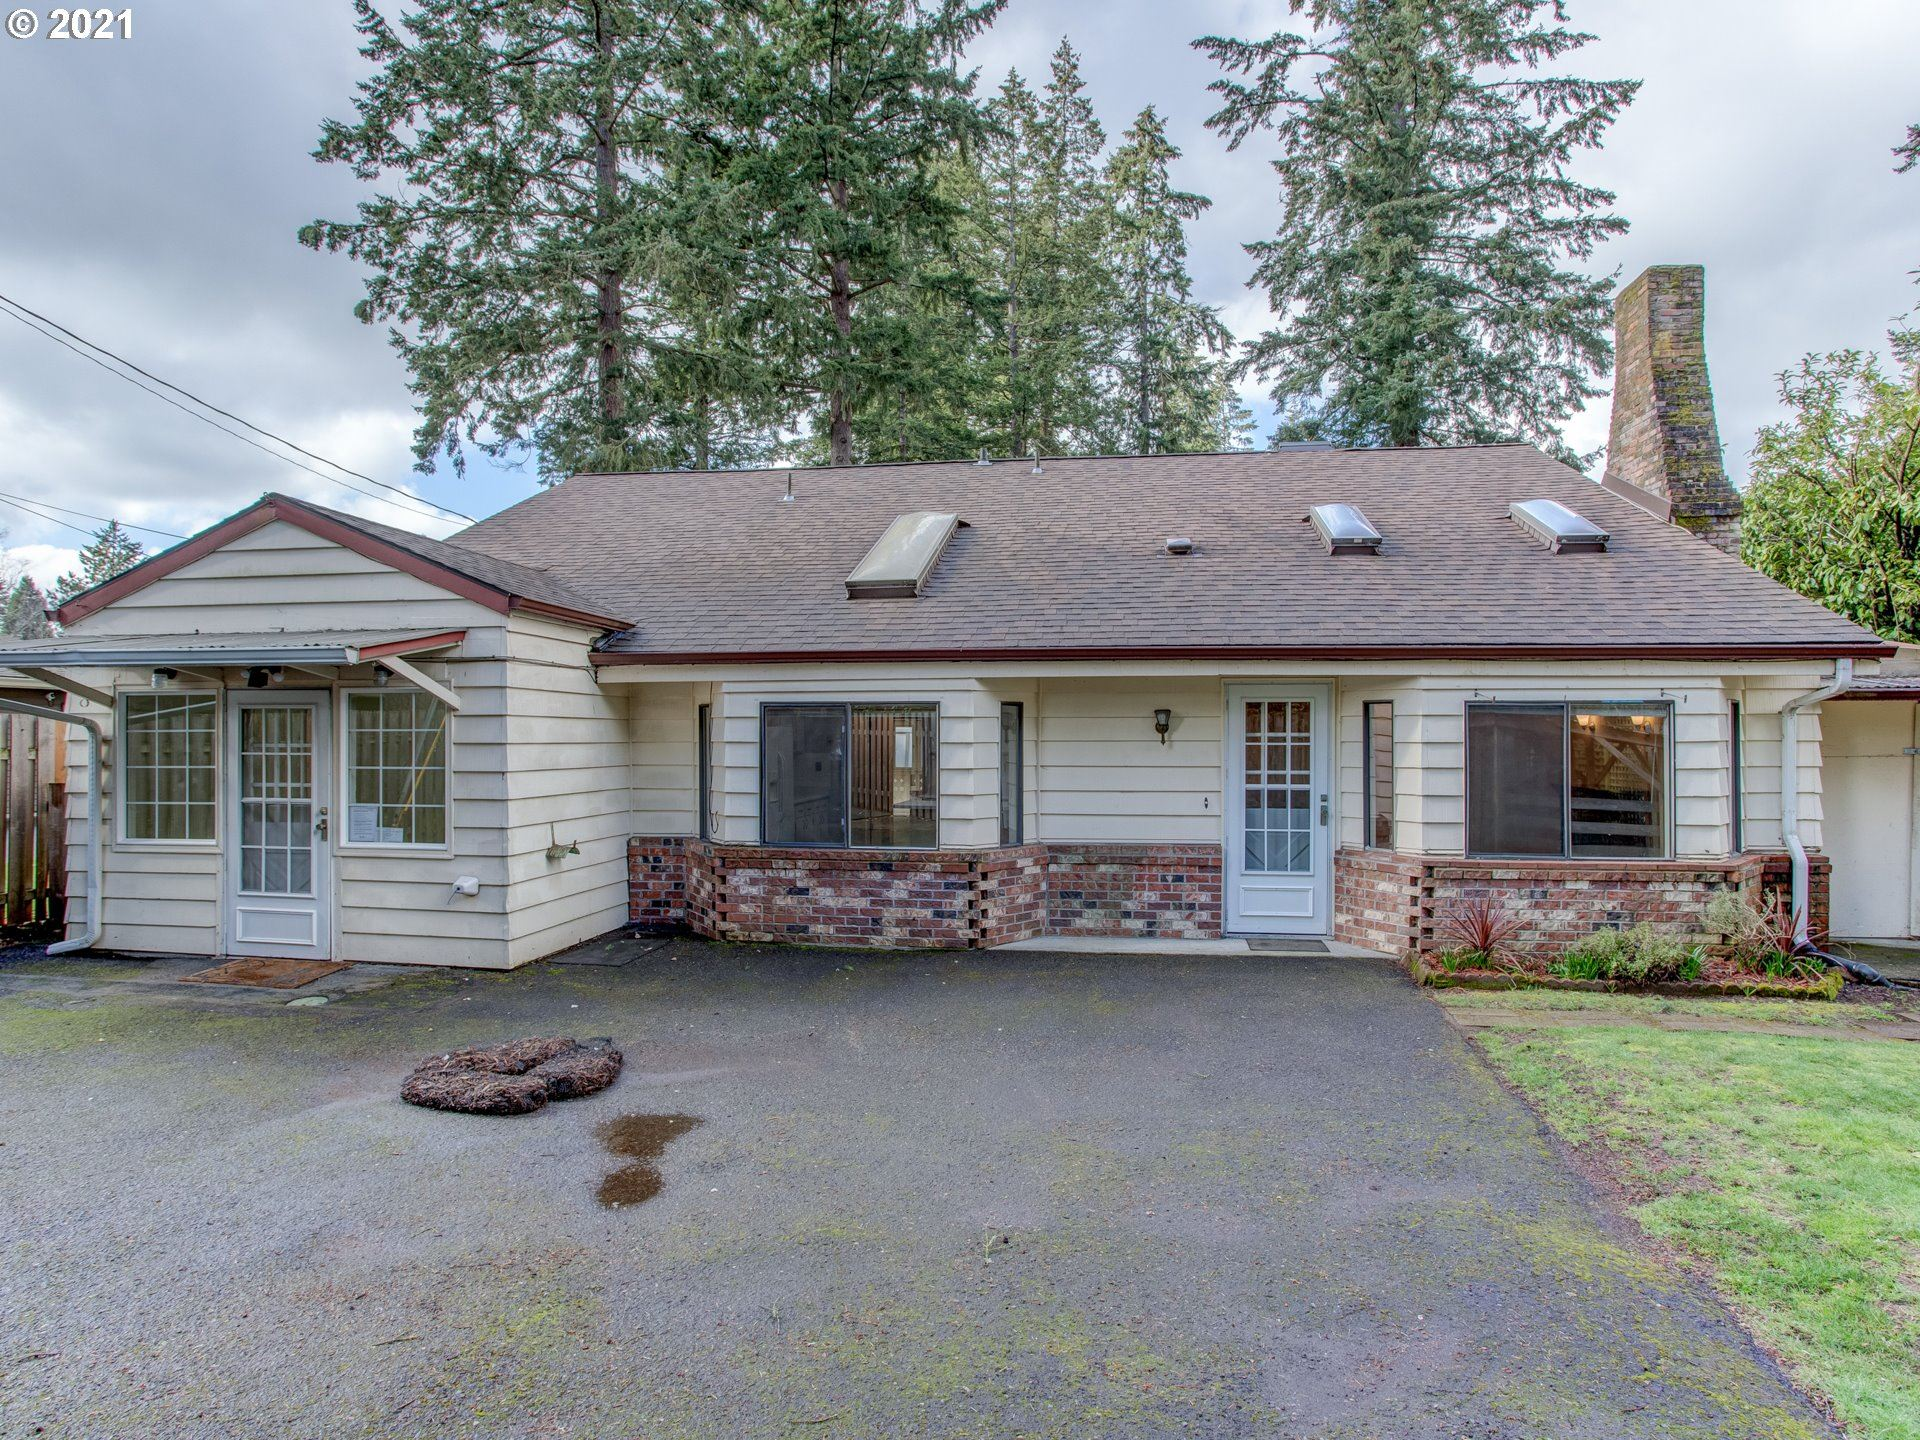 Photo for 17503 BRYANT RD, Lake Oswego, OR 97035 (MLS # 21469401)